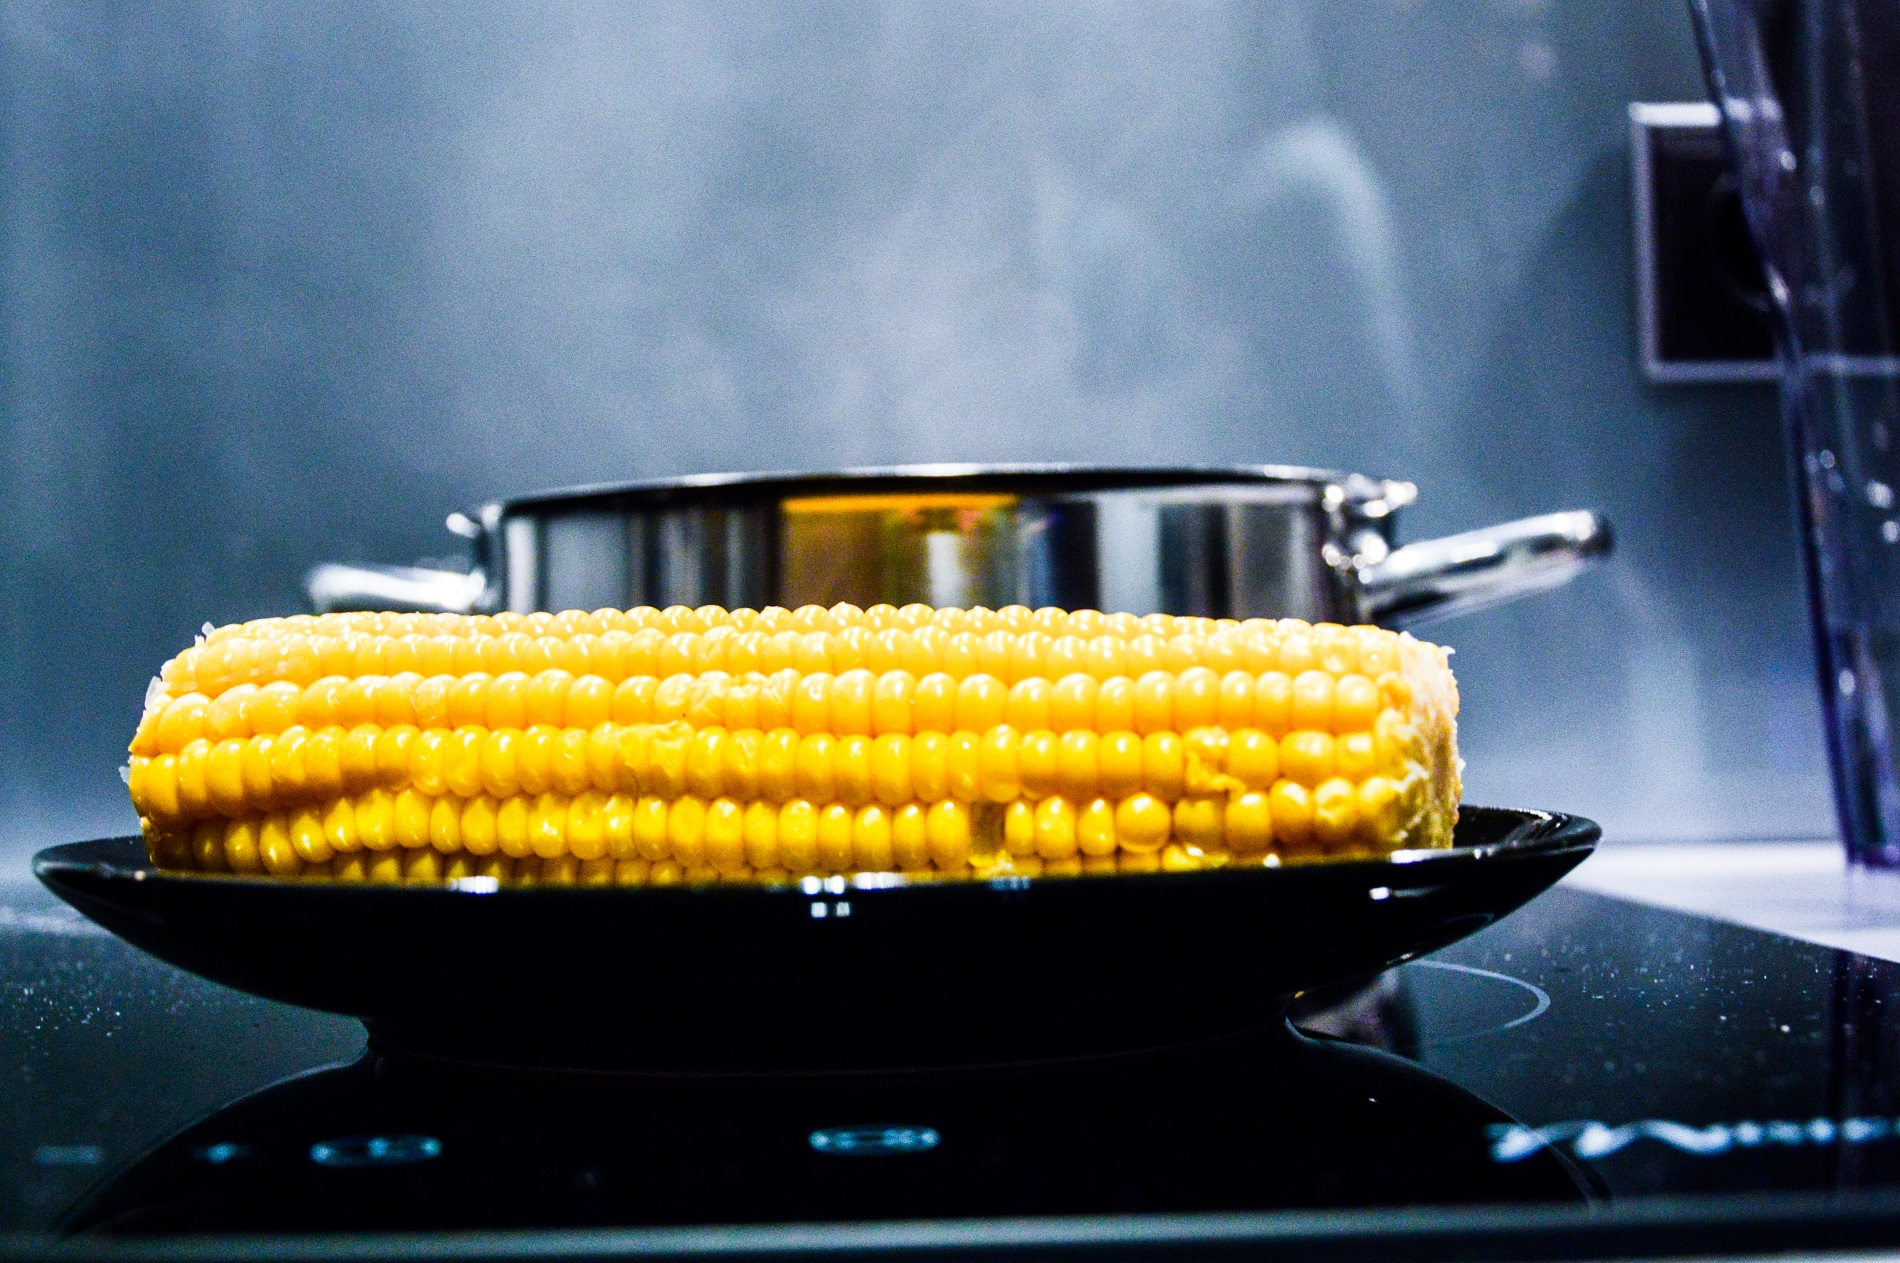 Corn ETF, Commodity-Related ETFs Plunge After Double Whammy